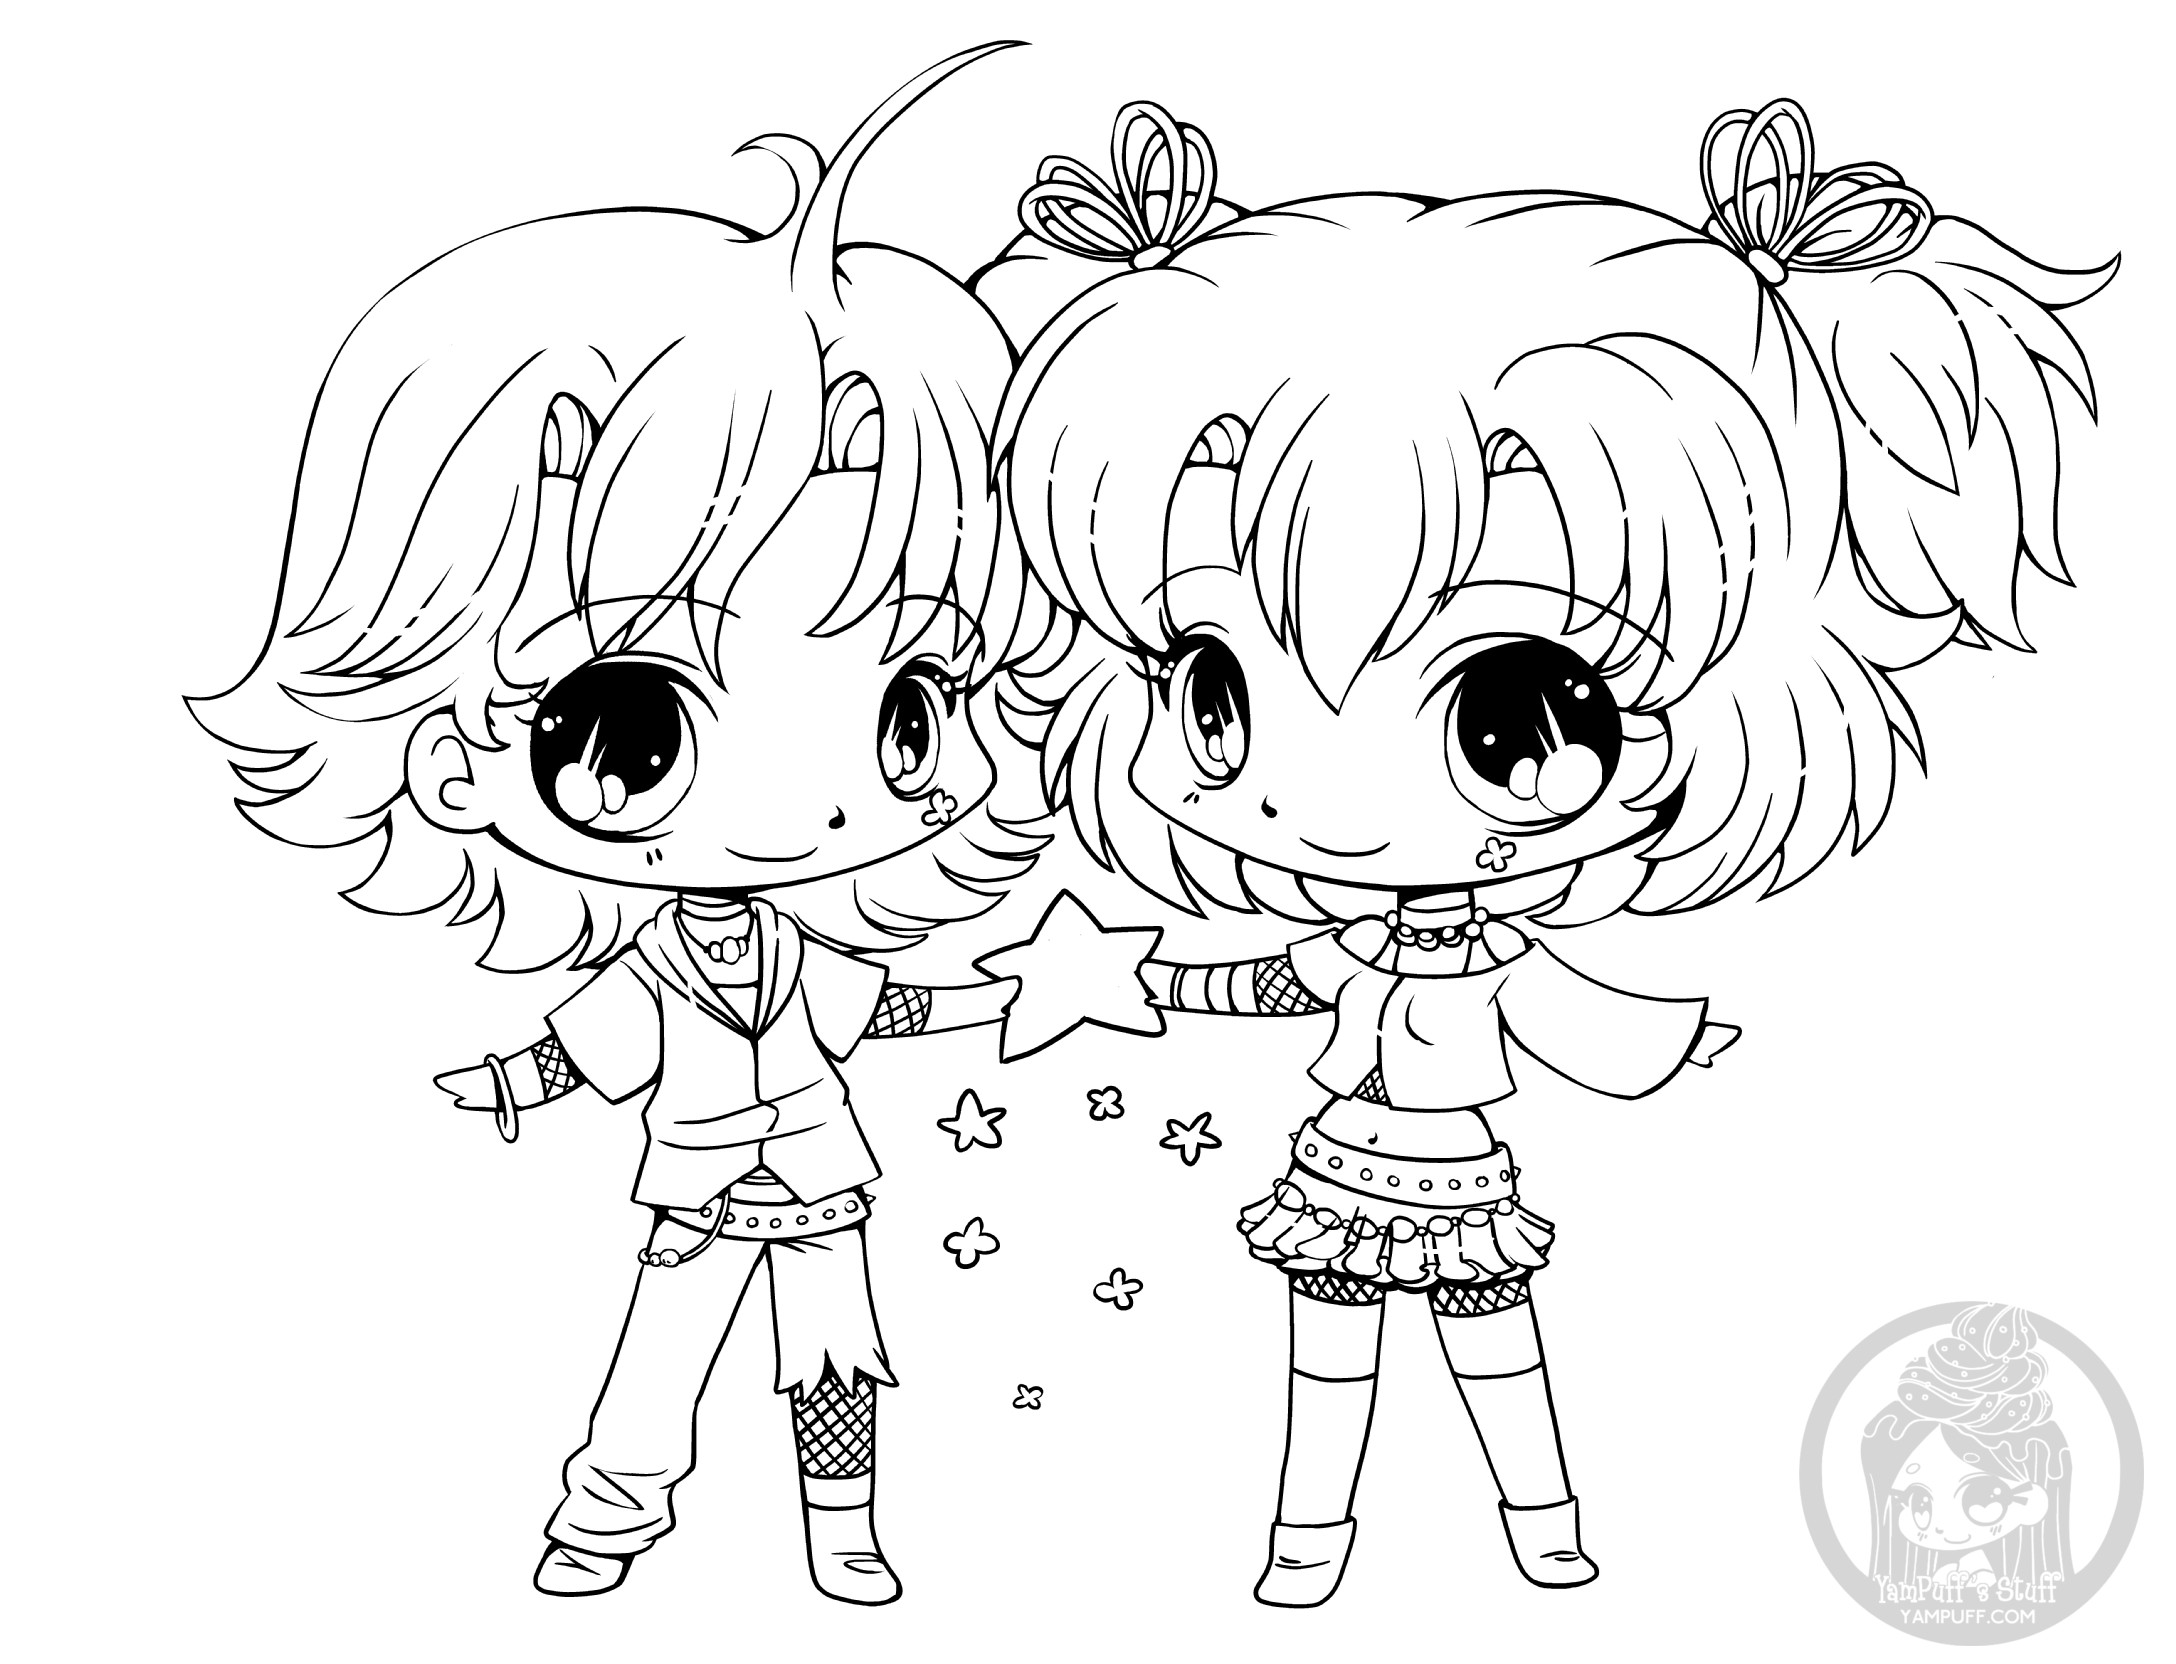 Chibi Boys Coloring Pages  Chibis Free Chibi Coloring Pages • YamPuff s Stuff